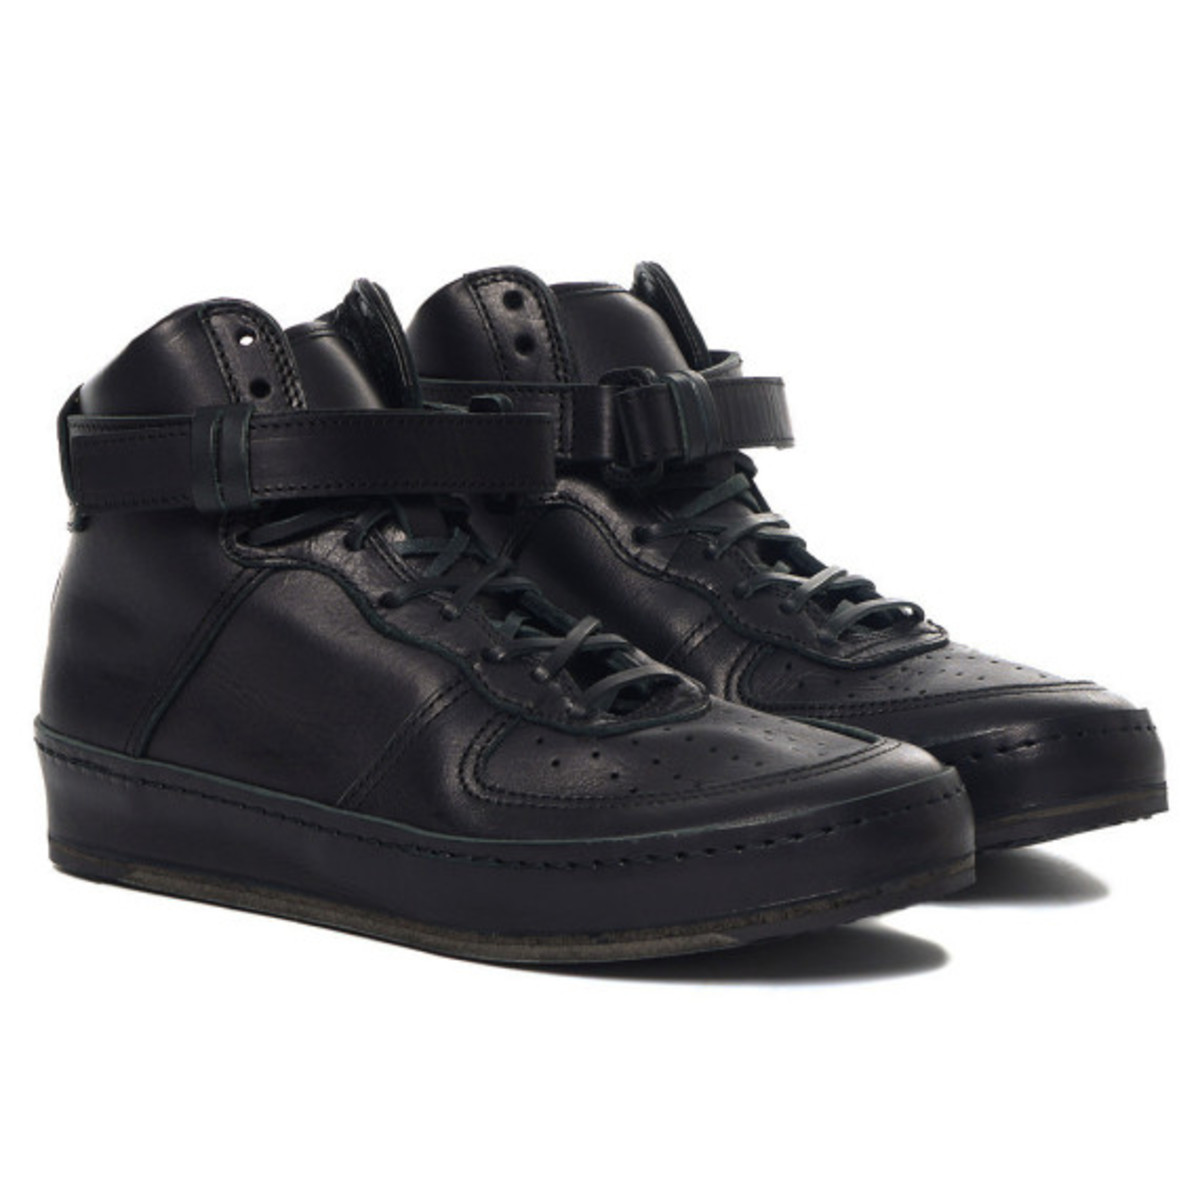 Hender Scheme - Manual Industrial Products 01 Black: Inspired by Nike Air Force 1 High - 0